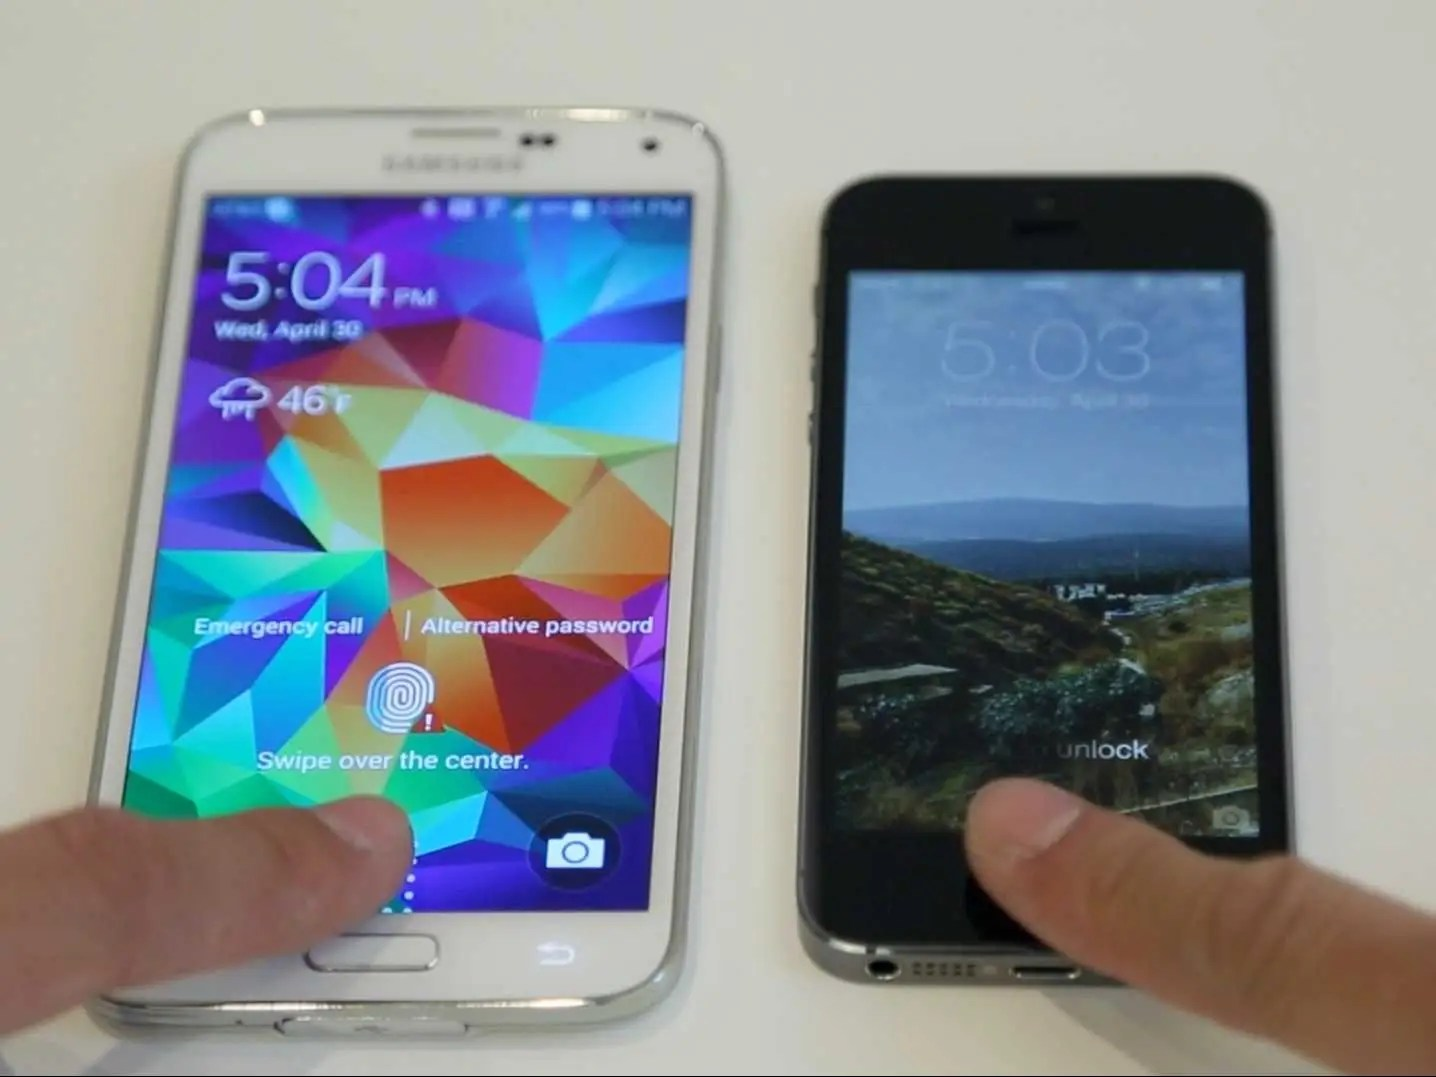 Samsung Galaxy S5 iPhone 5S Fingerprint Side by side